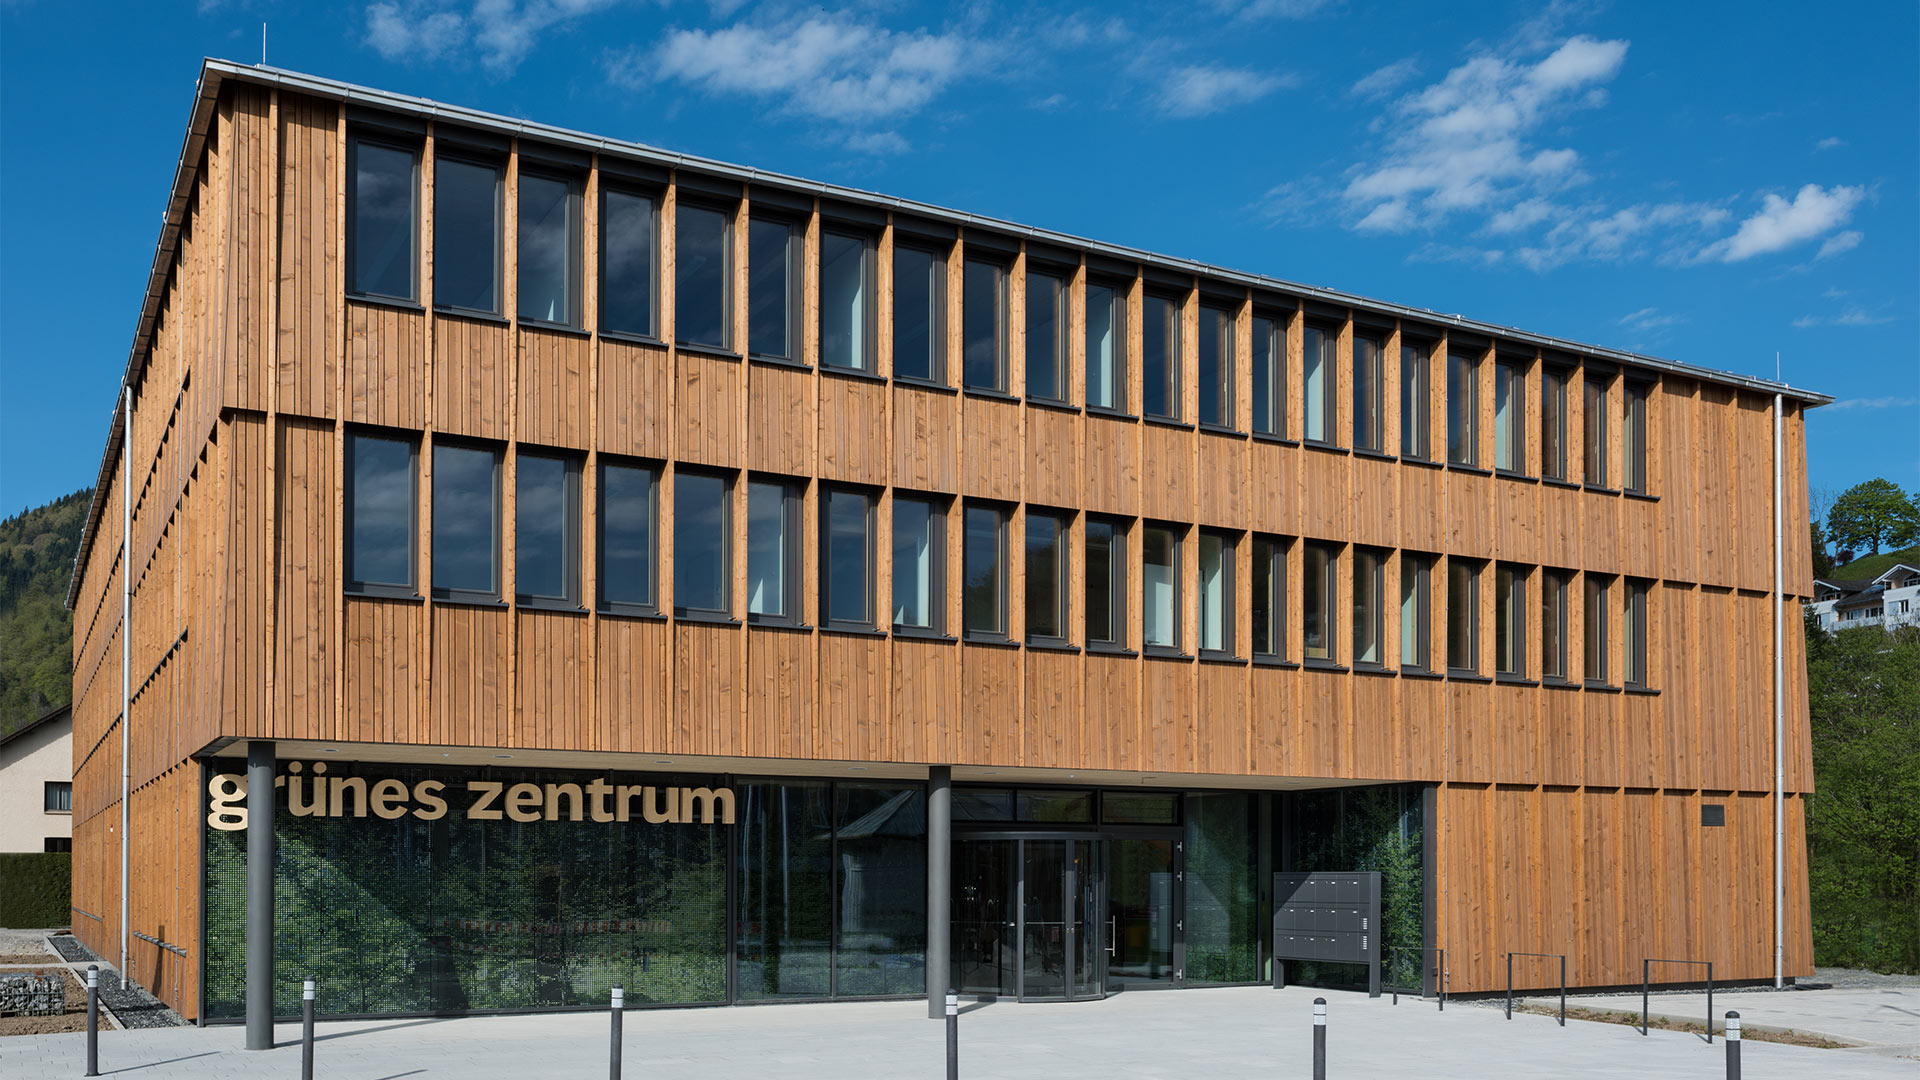 fileadmin/user_upload/Referenzen/Gruenes_Zentrum_Immenstadt/Guettinger-Ingenieure_Gruenes-Zentrum-Immenstadt_01.jpg